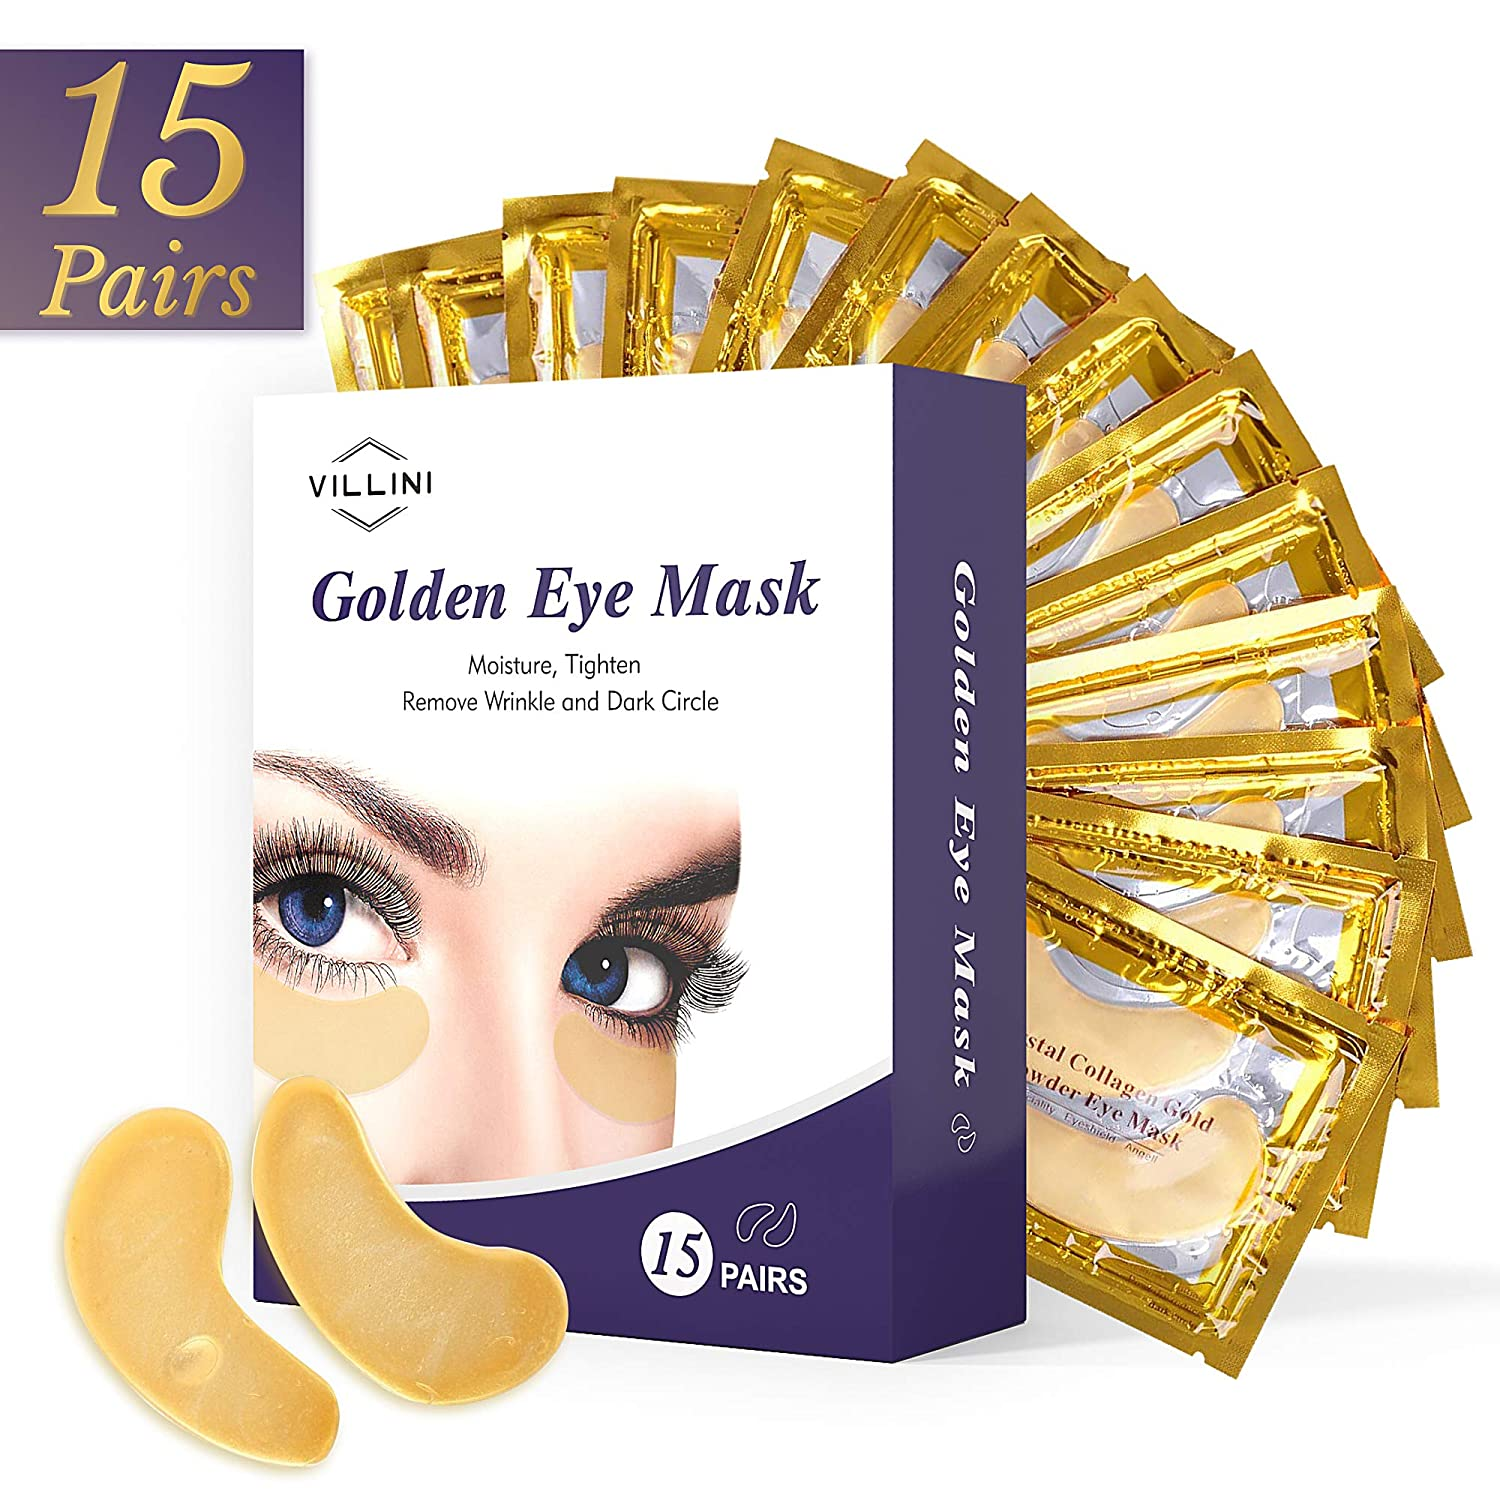 VILLINI Under Eye Patches - 24K Gold Eye Mask - Anti-Aging Under Eye Pads - Eye Wrinkle Patches - Hydrogel Eye Treatment Mask for Puffy Eyes and Dark Circles - 15 Pairs